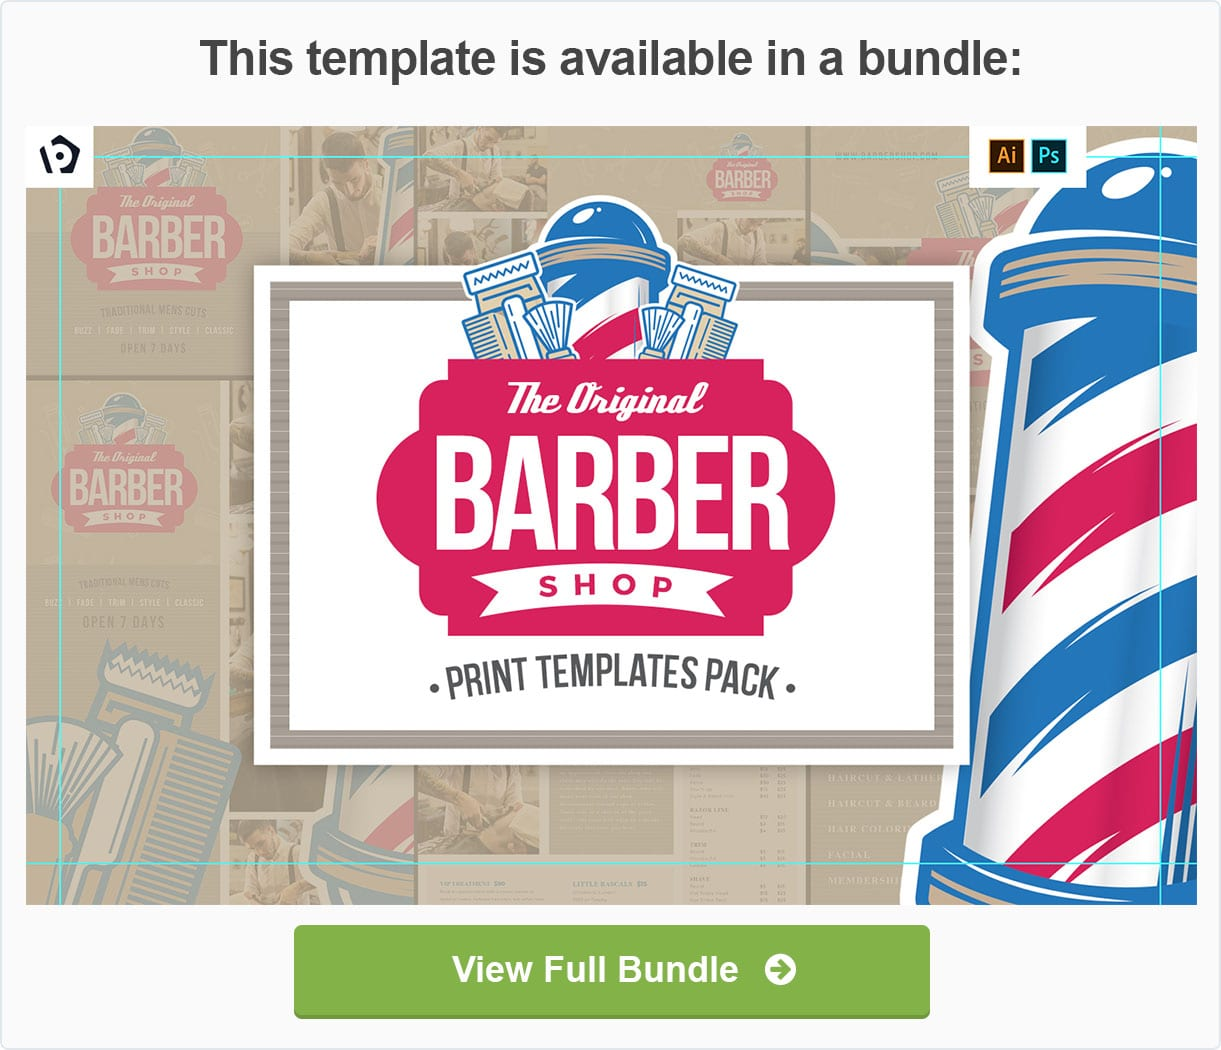 Barber Shop Templates Pack by BrandPacks